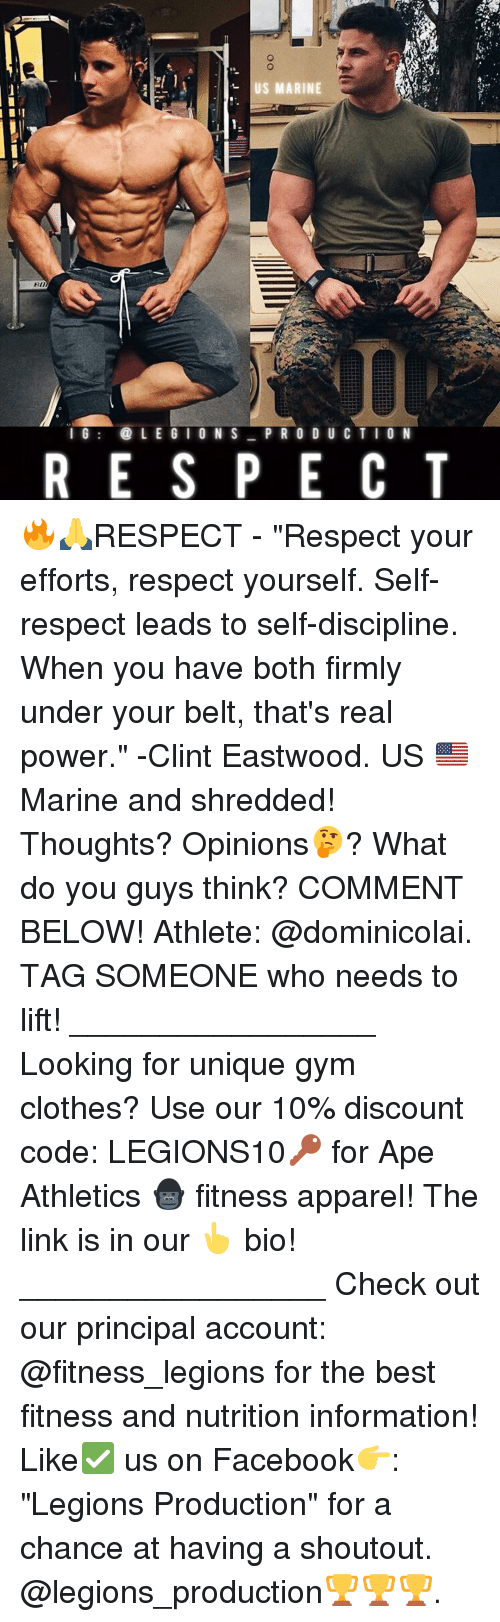 """Clint Eastwood: US MARINE  I G  LEGION S  PR O D U C T I O N  R E S P E C T 🔥🙏RESPECT - """"Respect your efforts, respect yourself. Self-respect leads to self-discipline. When you have both firmly under your belt, that's real power."""" -Clint Eastwood. US 🇺🇸 Marine and shredded! Thoughts? Opinions🤔? What do you guys think? COMMENT BELOW! Athlete: @dominicolai. TAG SOMEONE who needs to lift! _________________ Looking for unique gym clothes? Use our 10% discount code: LEGIONS10🔑 for Ape Athletics 🦍 fitness apparel! The link is in our 👆 bio! _________________ Check out our principal account: @fitness_legions for the best fitness and nutrition information! Like✅ us on Facebook👉: """"Legions Production"""" for a chance at having a shoutout. @legions_production🏆🏆🏆."""